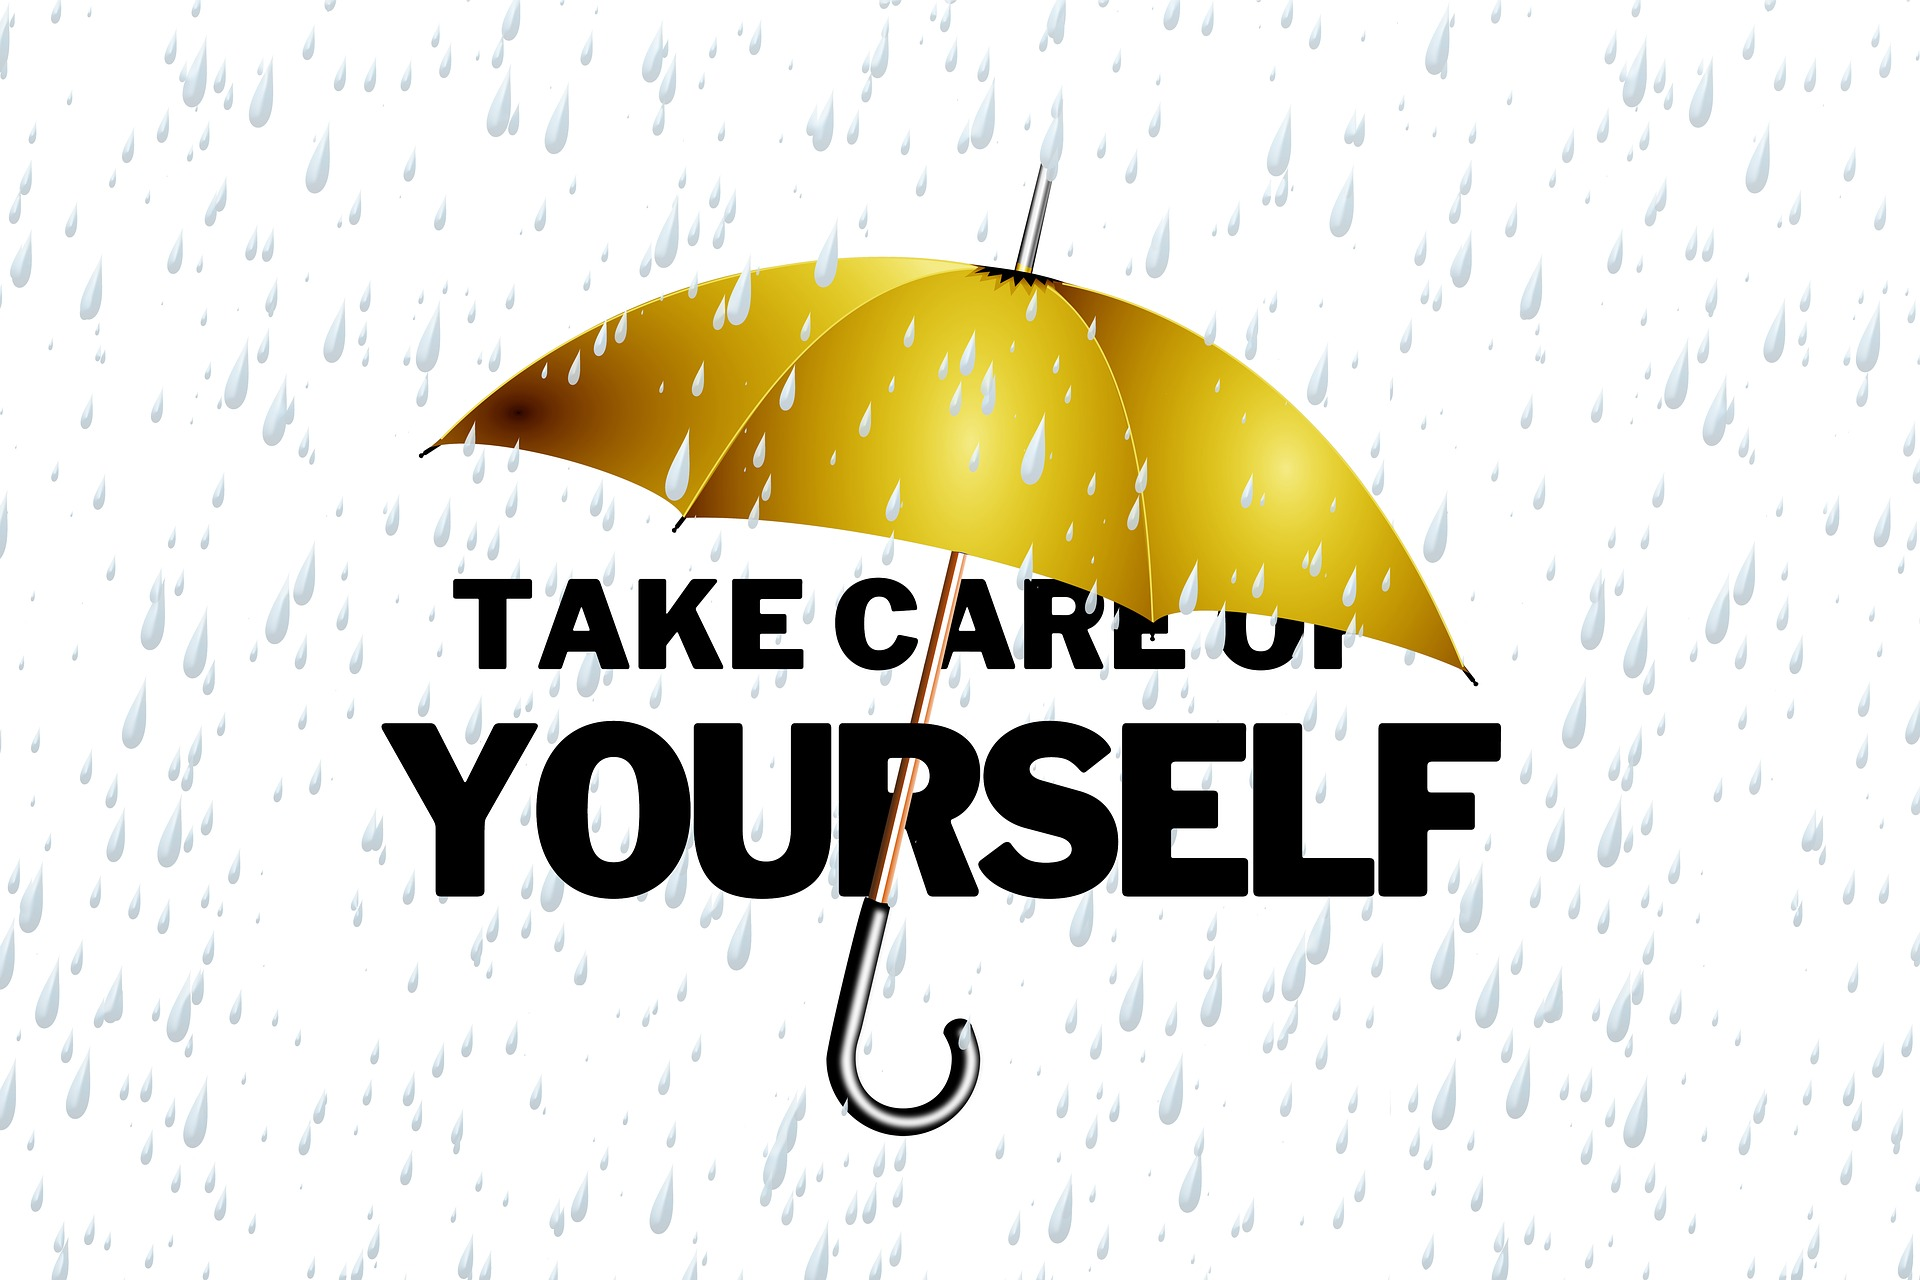 self-care yellow umbrella and words.jpg